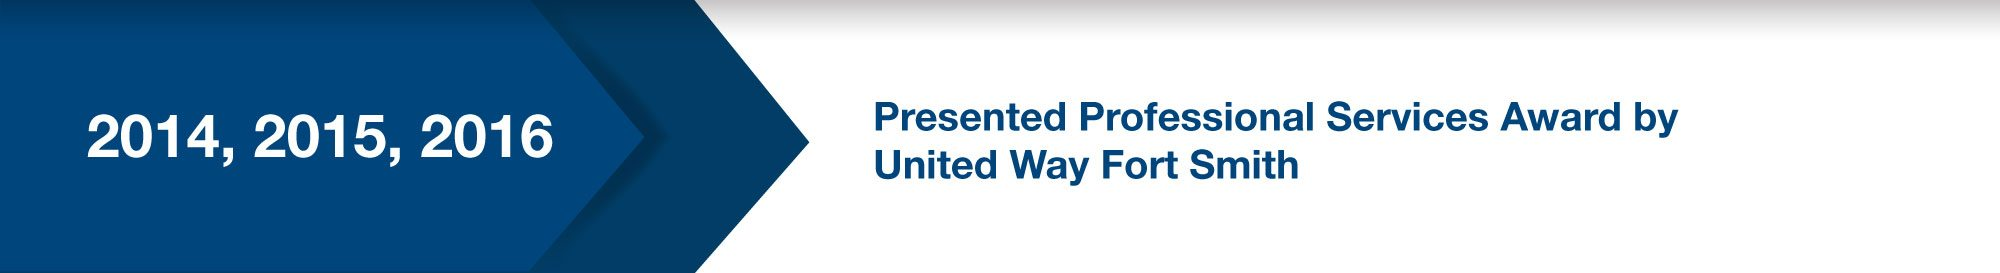 Presented Professional Services Award by United Way Fort Smith (2014, 2015, 2016)